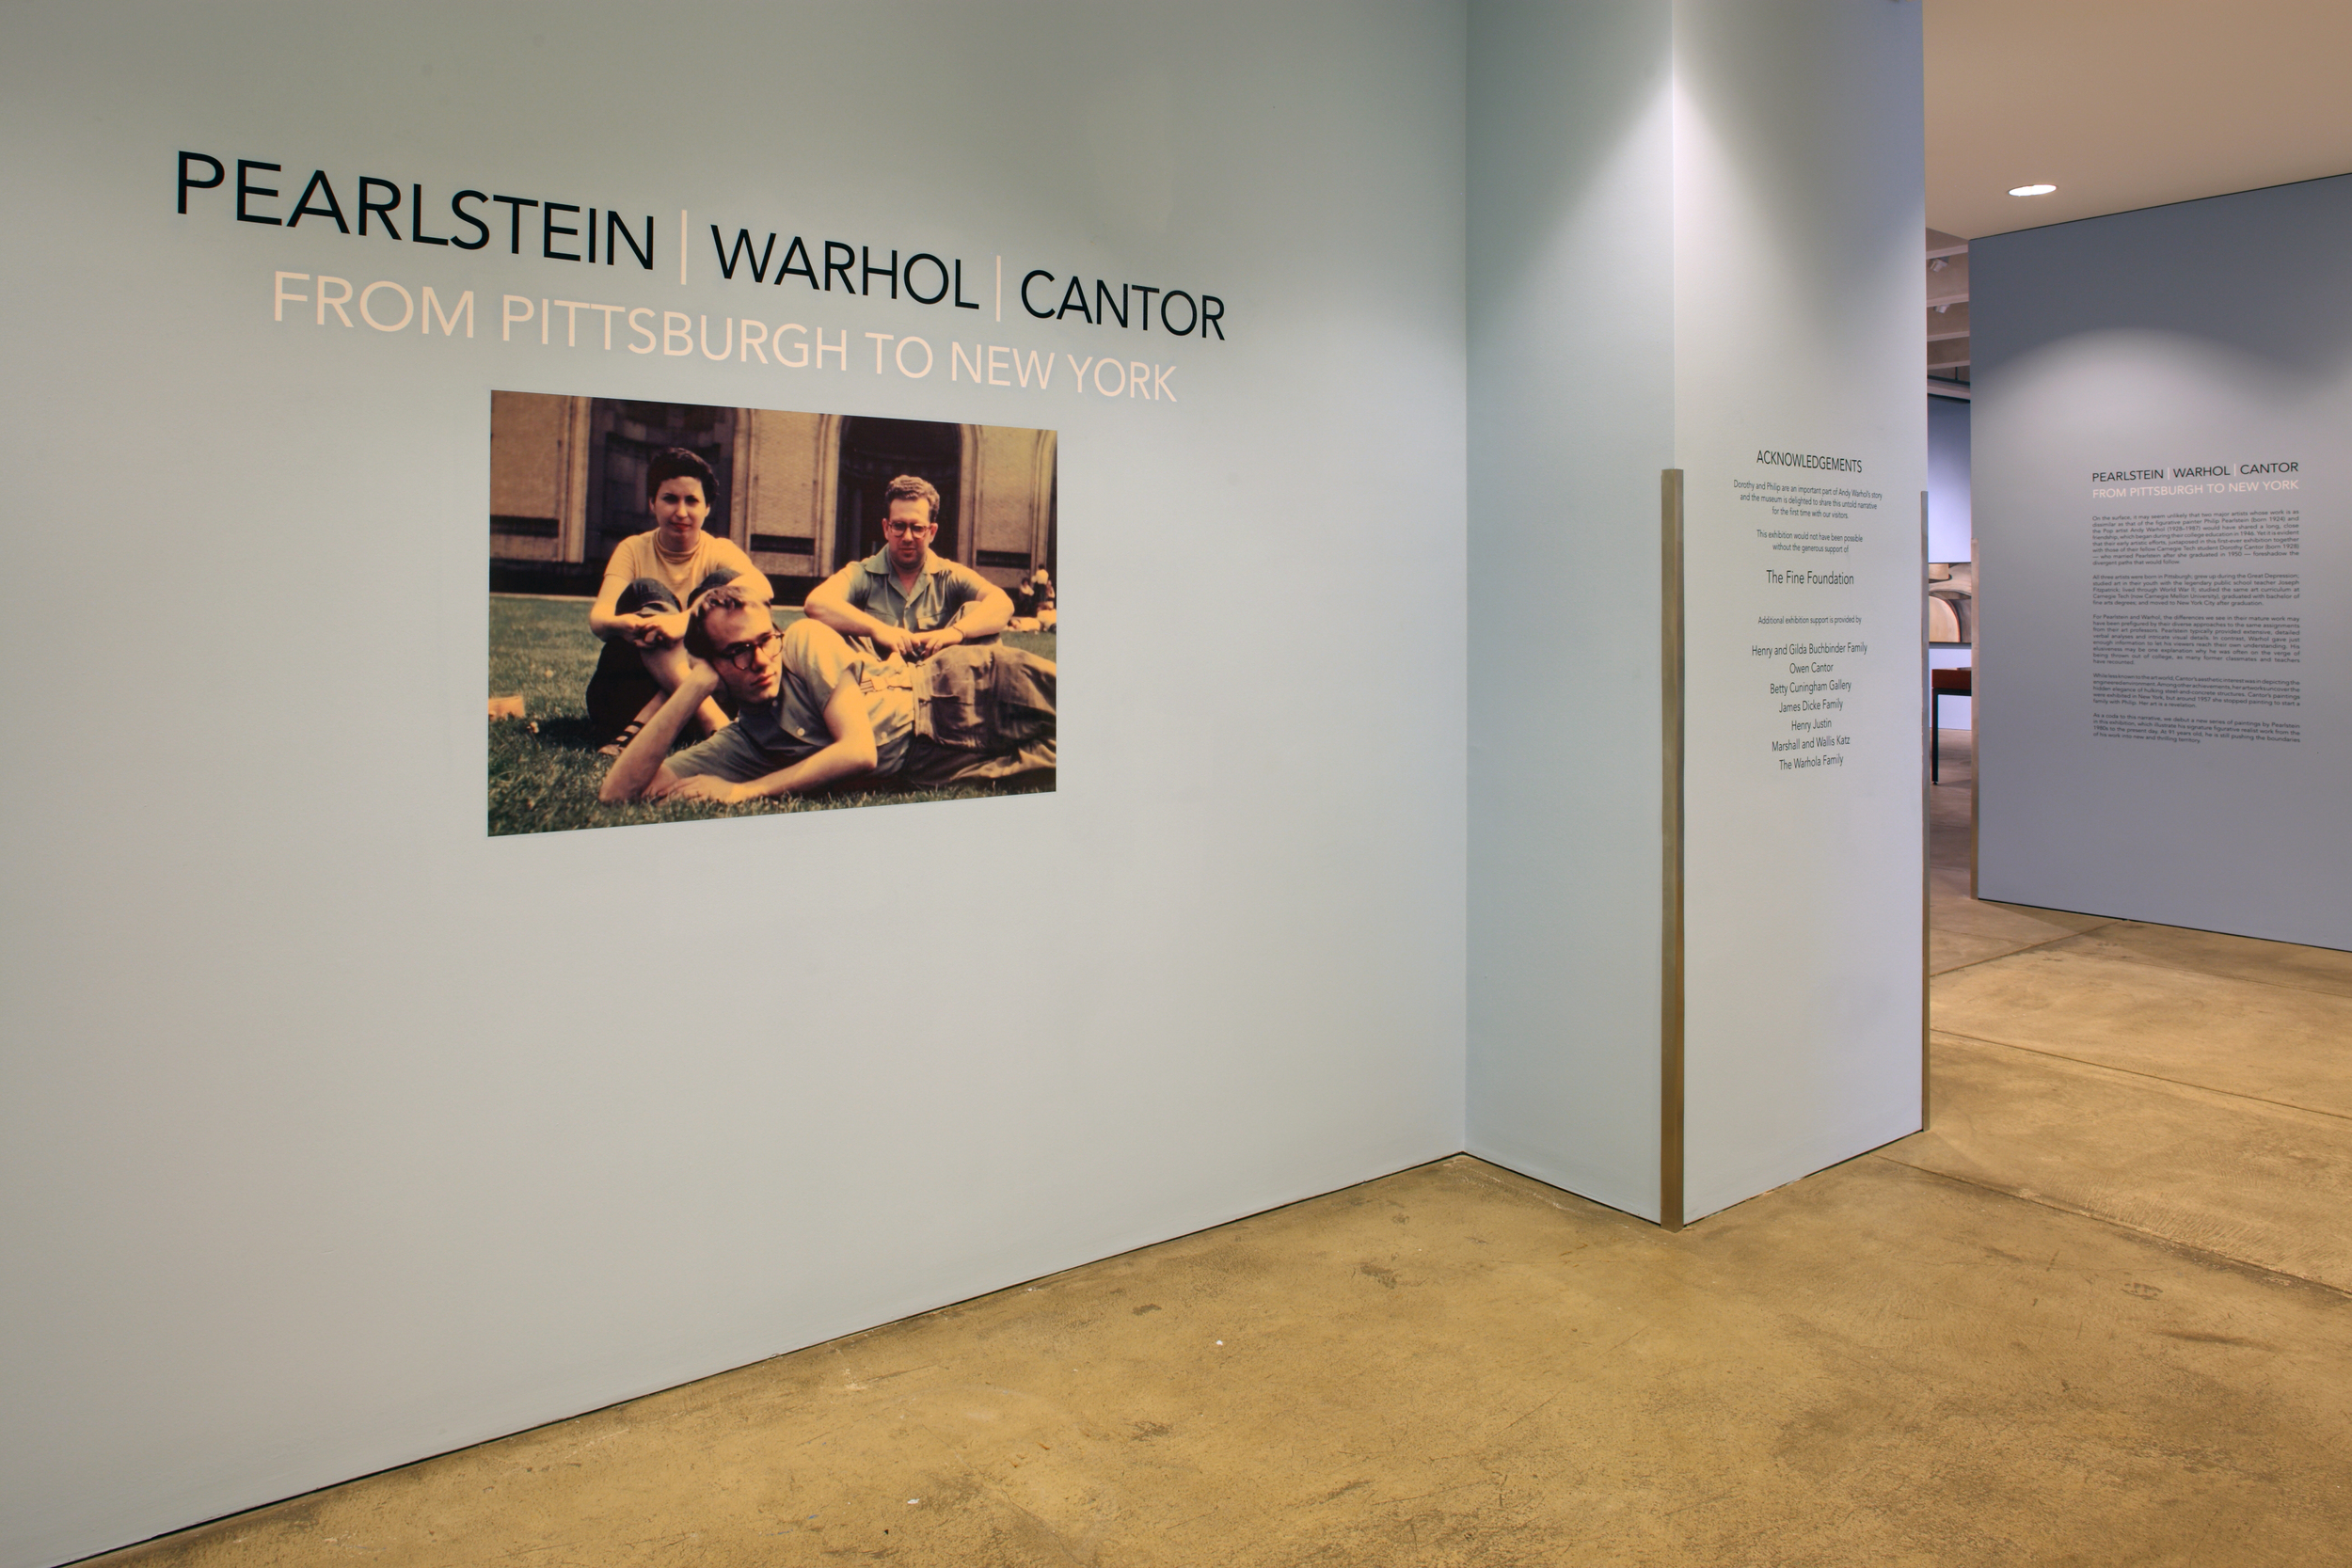 Pearlstein Warhol Cantor - From Pittsburgh to New York at AWM, 2015 0001.JPG